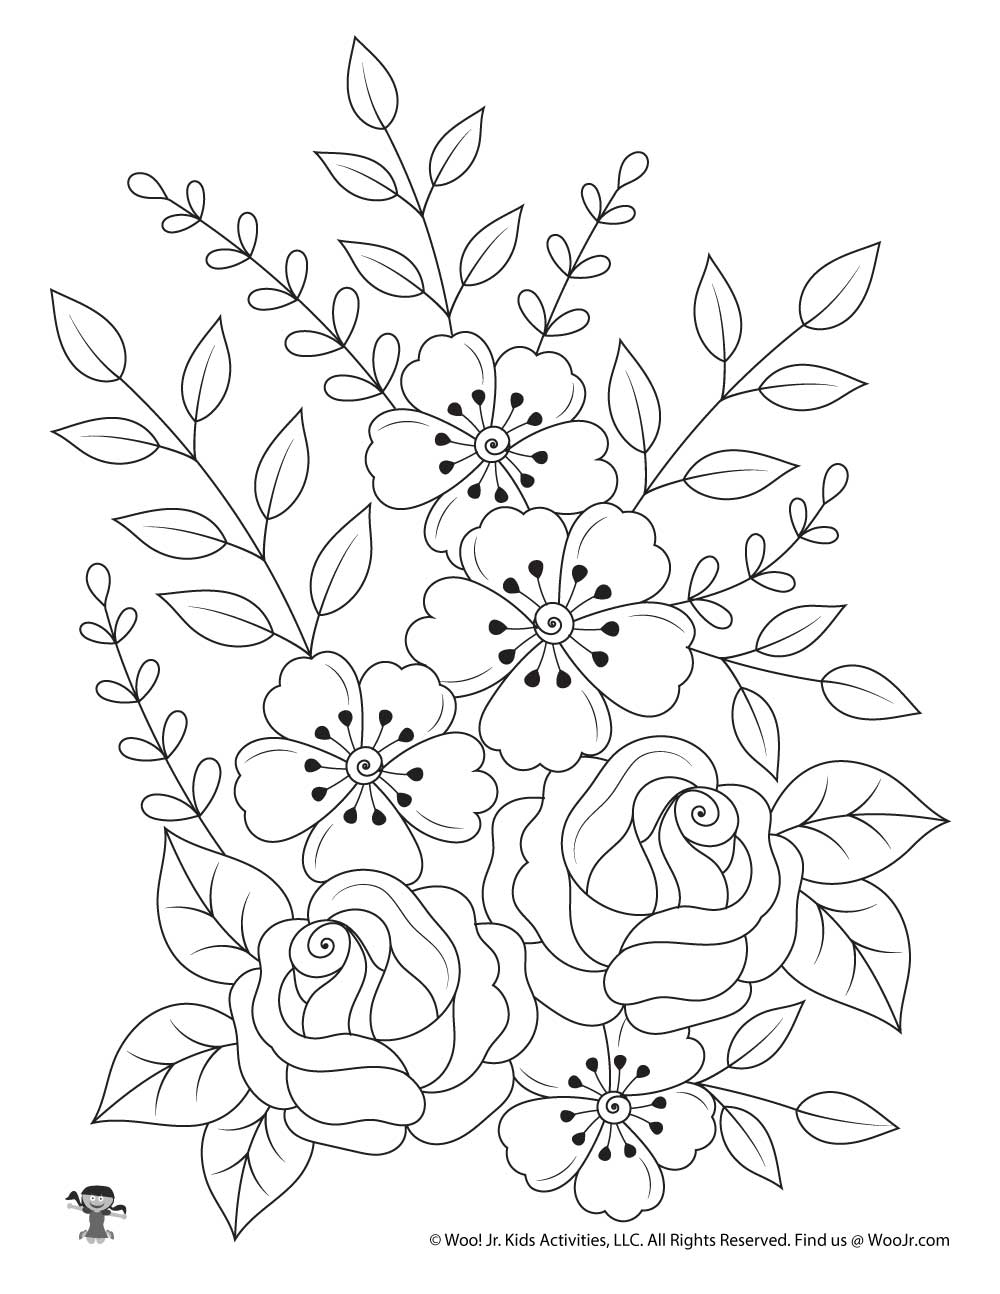 Flowers Nature Adult Coloring Page Woo Jr Kids Activities